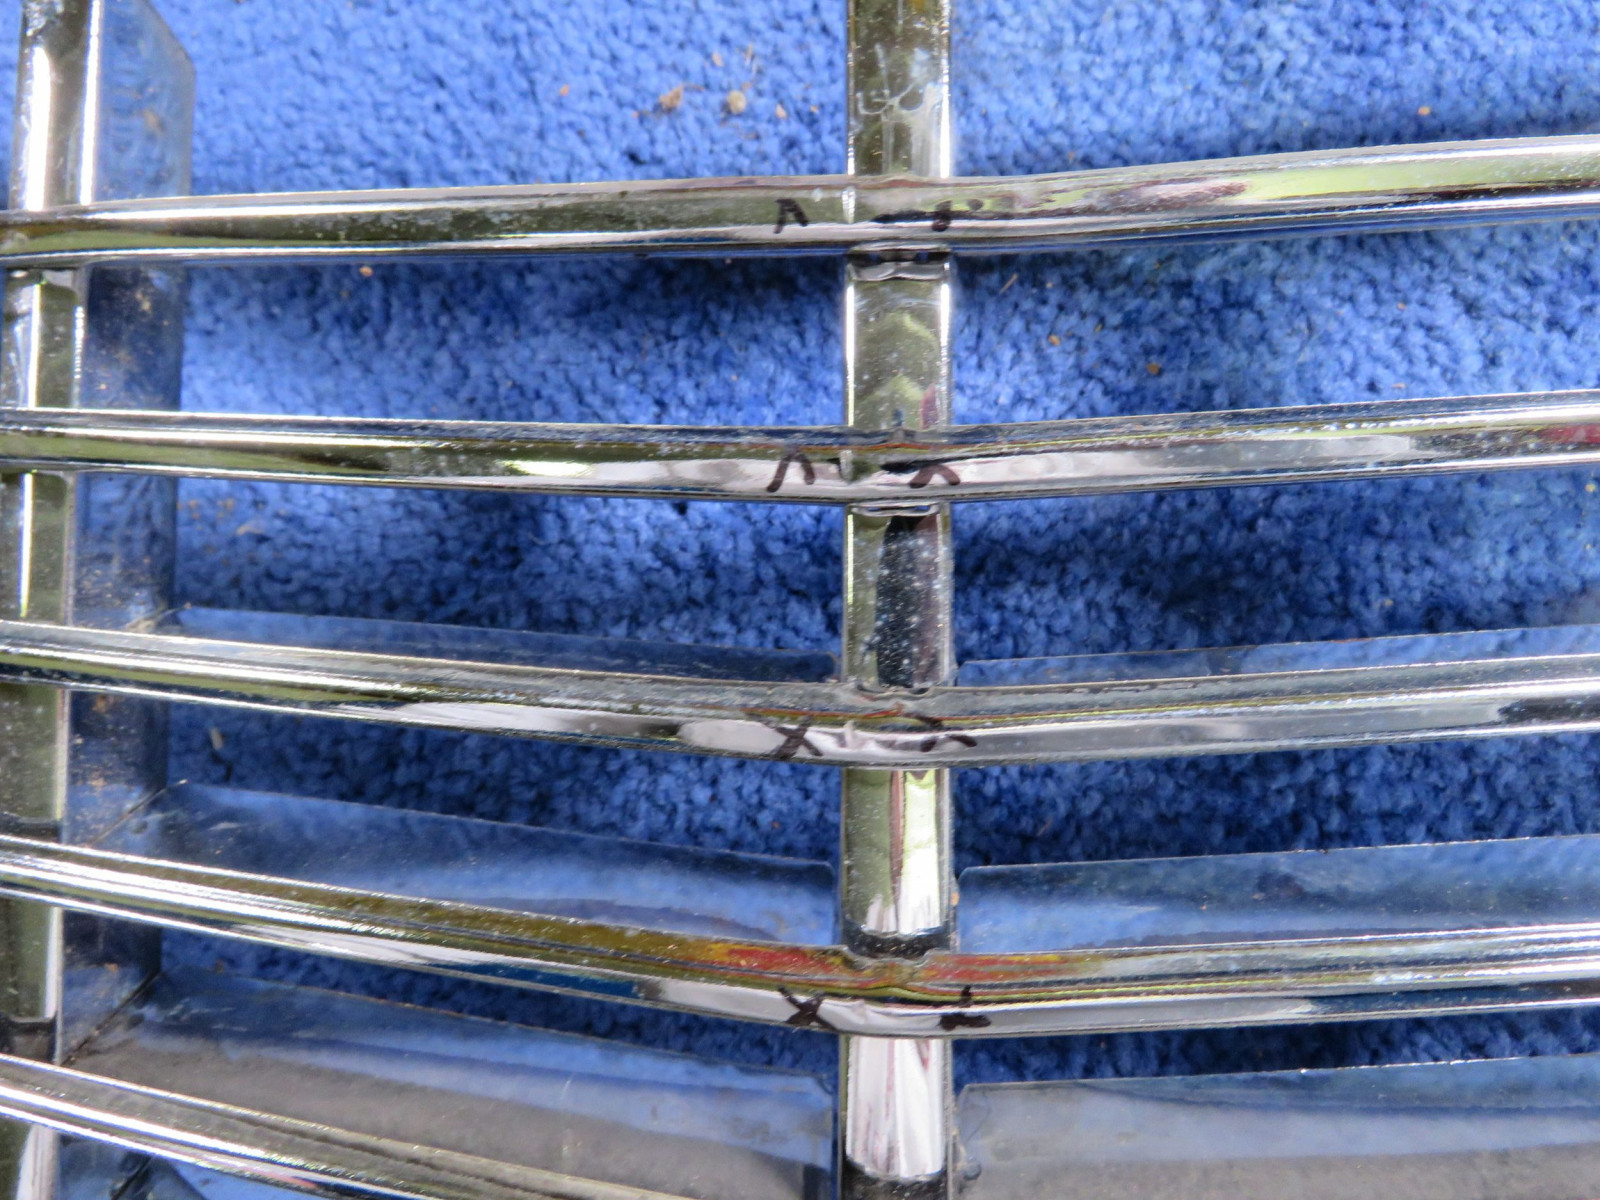 NOS 1956 Chevrolet Grill - Image 2